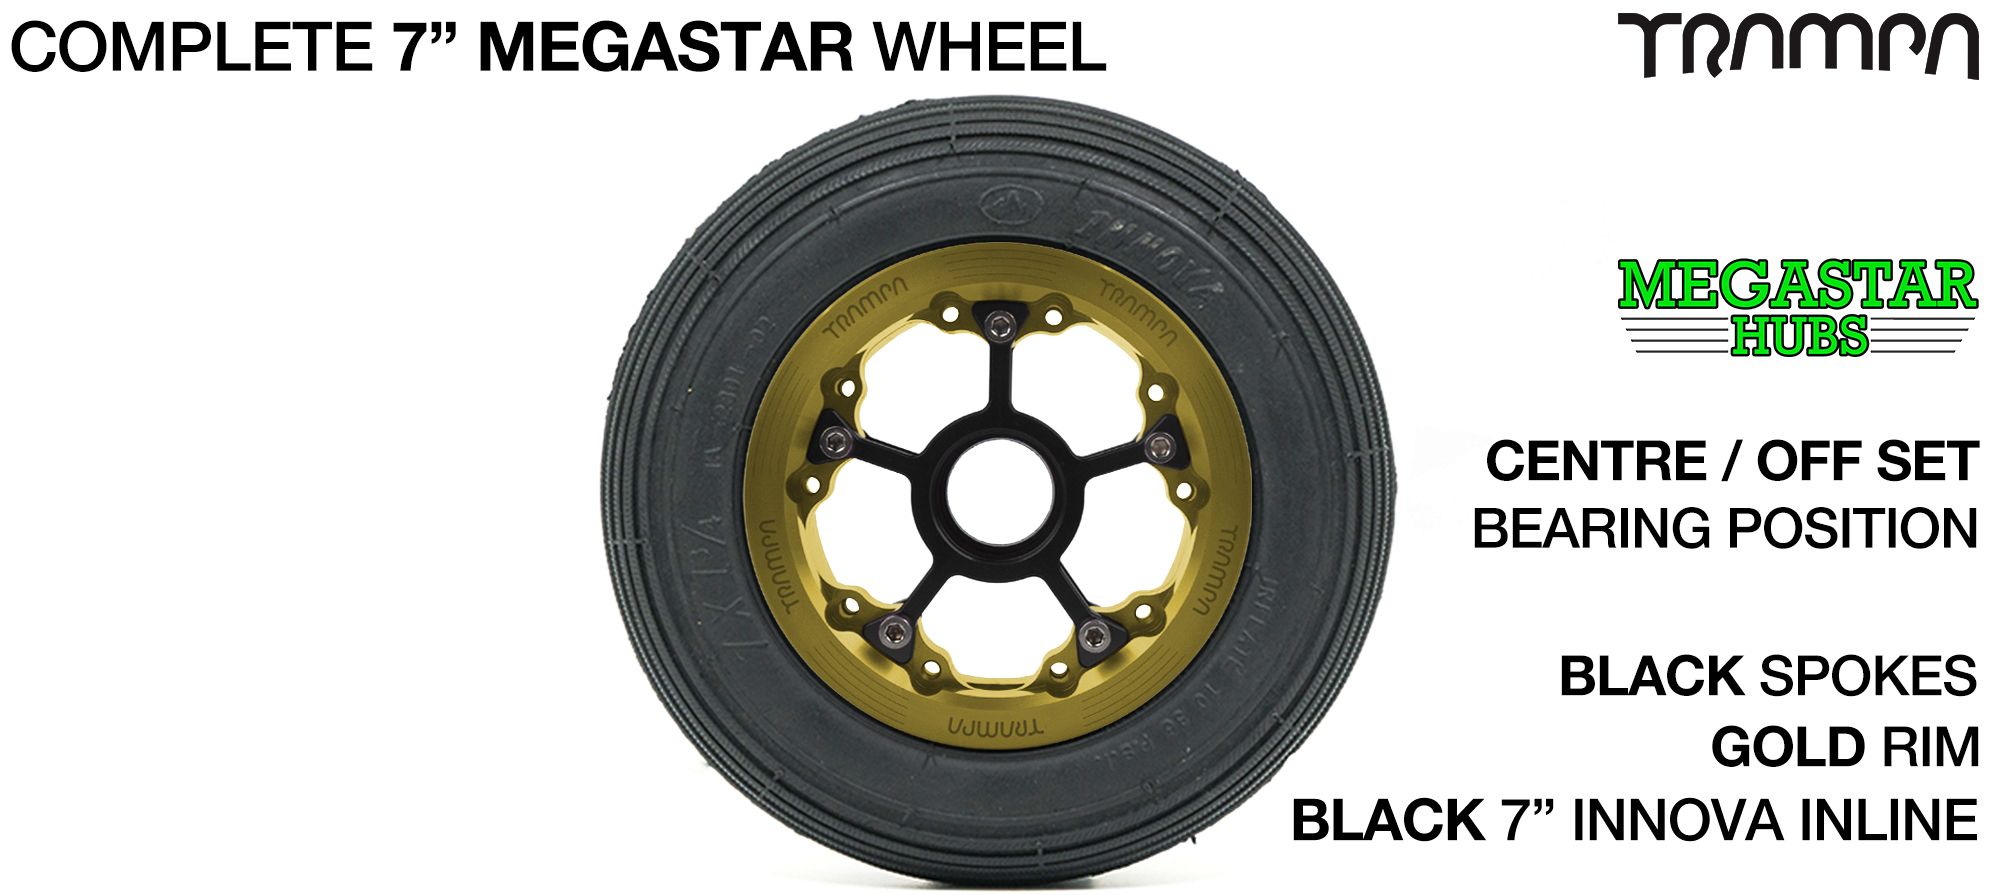 GOLD MEGASTAR Rims with BLACK Spokes & 7 Inch Tyres